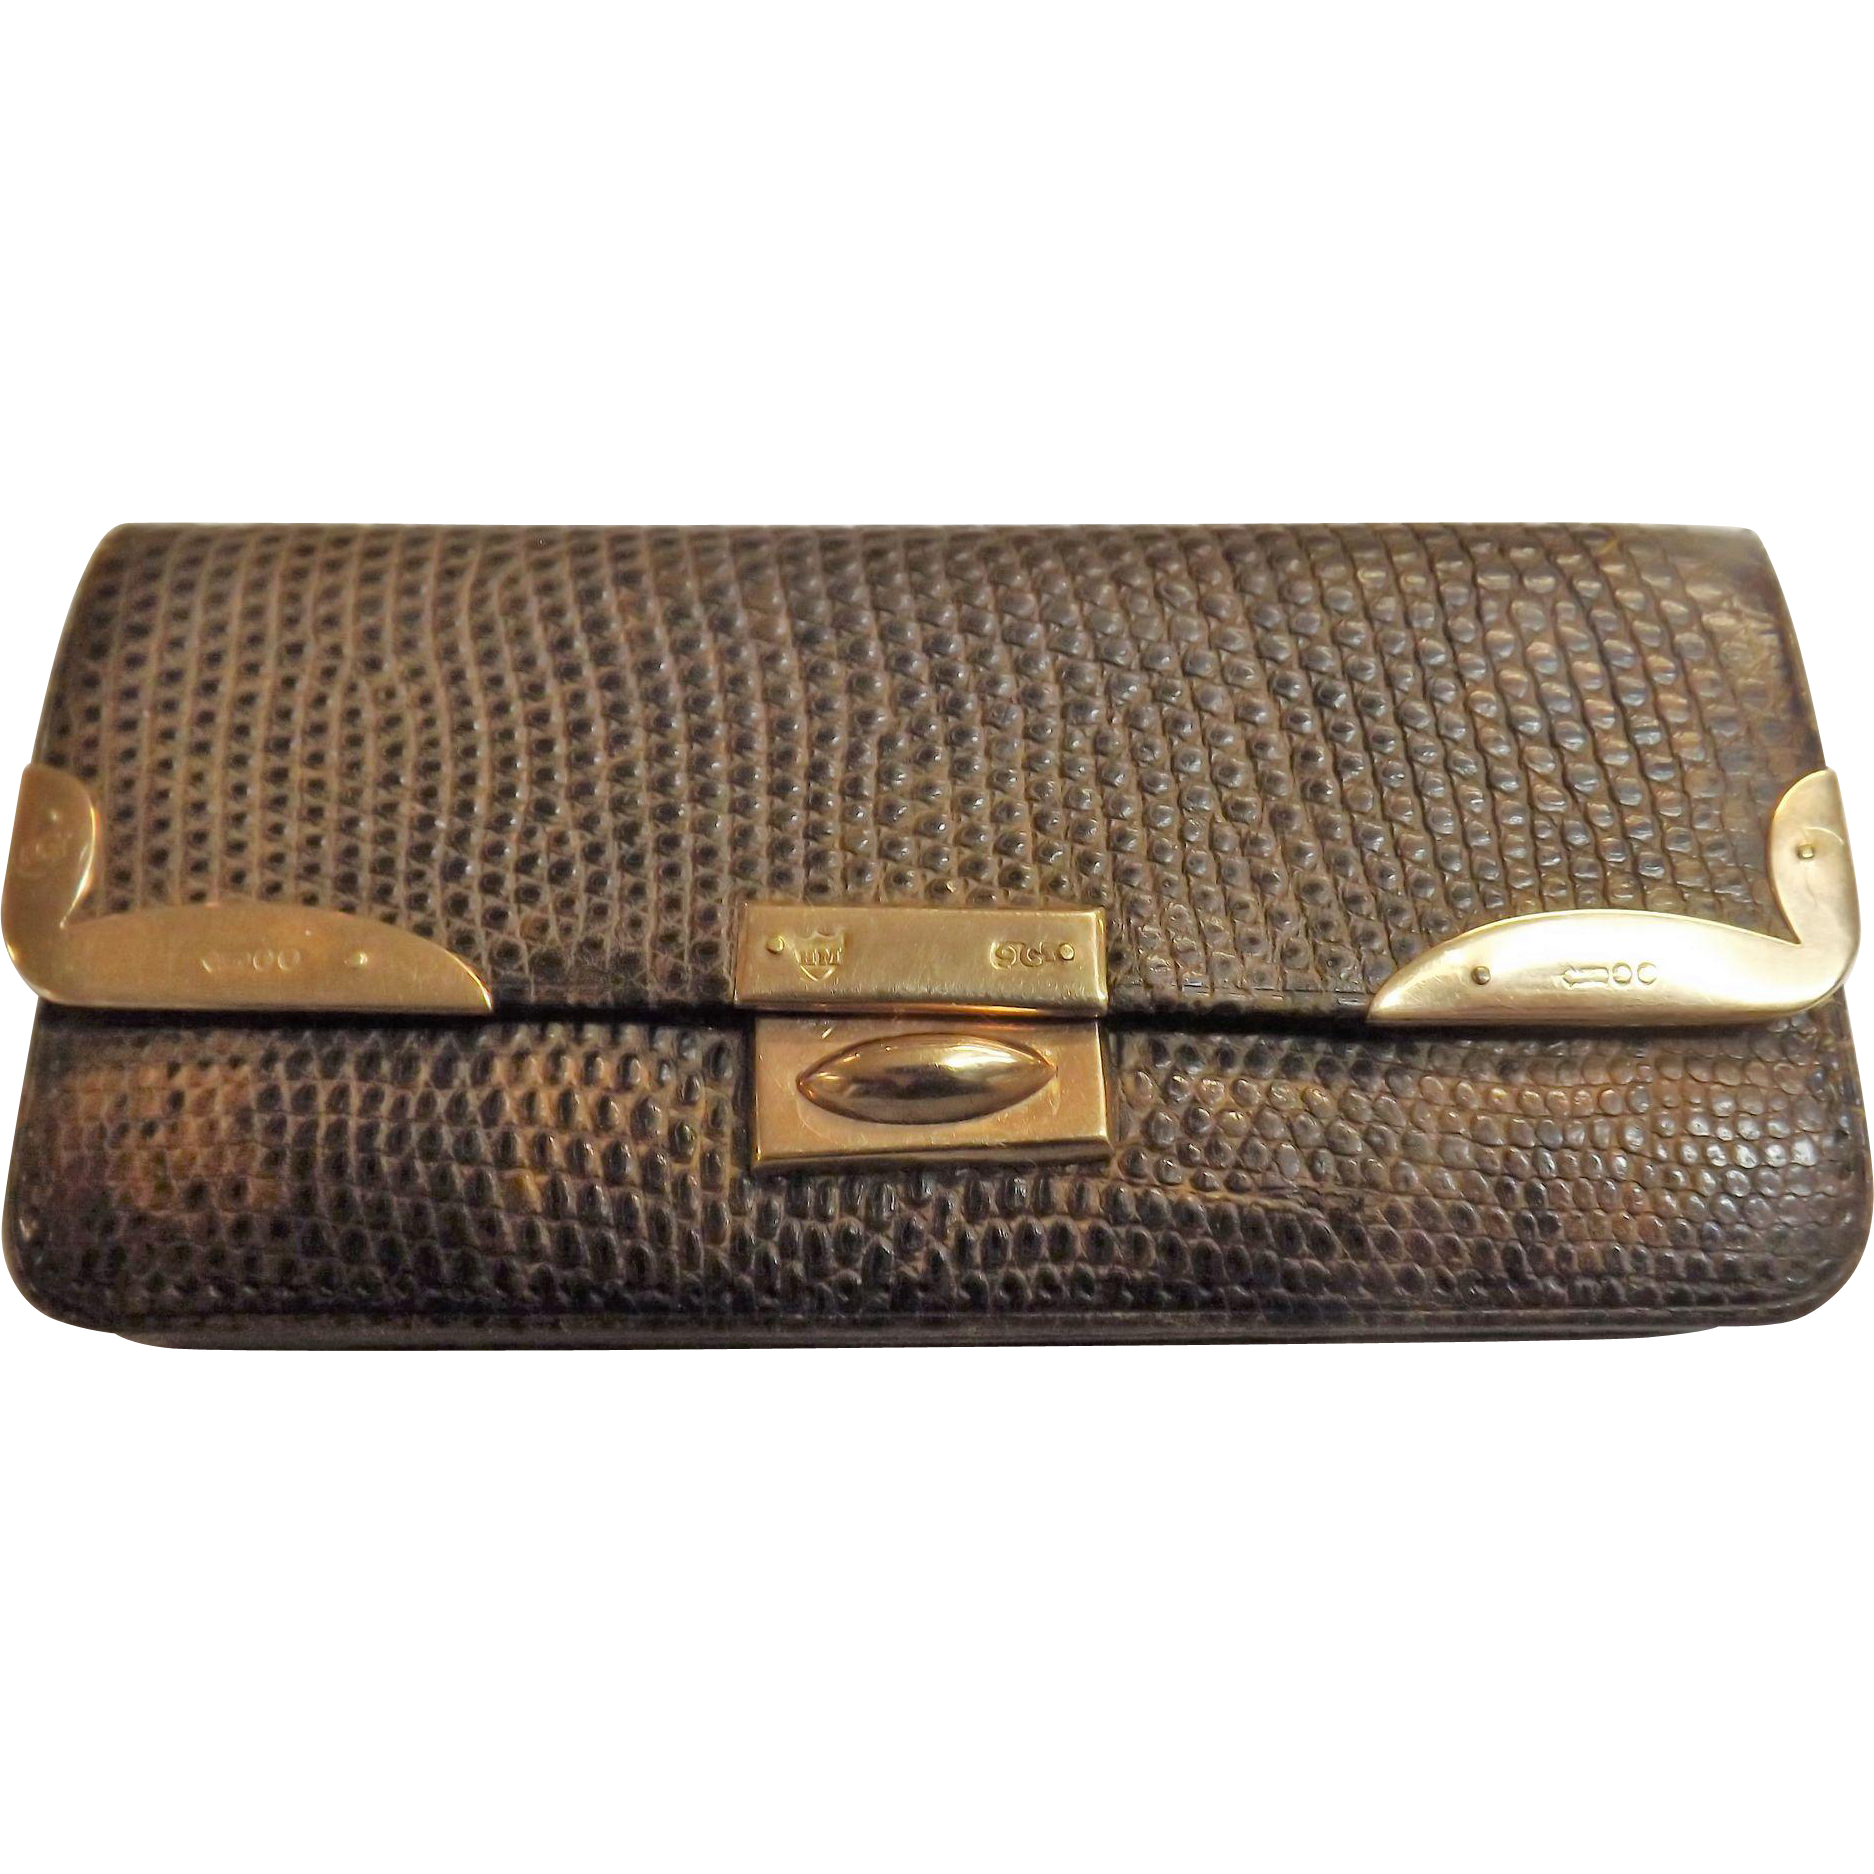 Victorian Snakeskin Pocket Purse With 9 Carat Gold Fittings